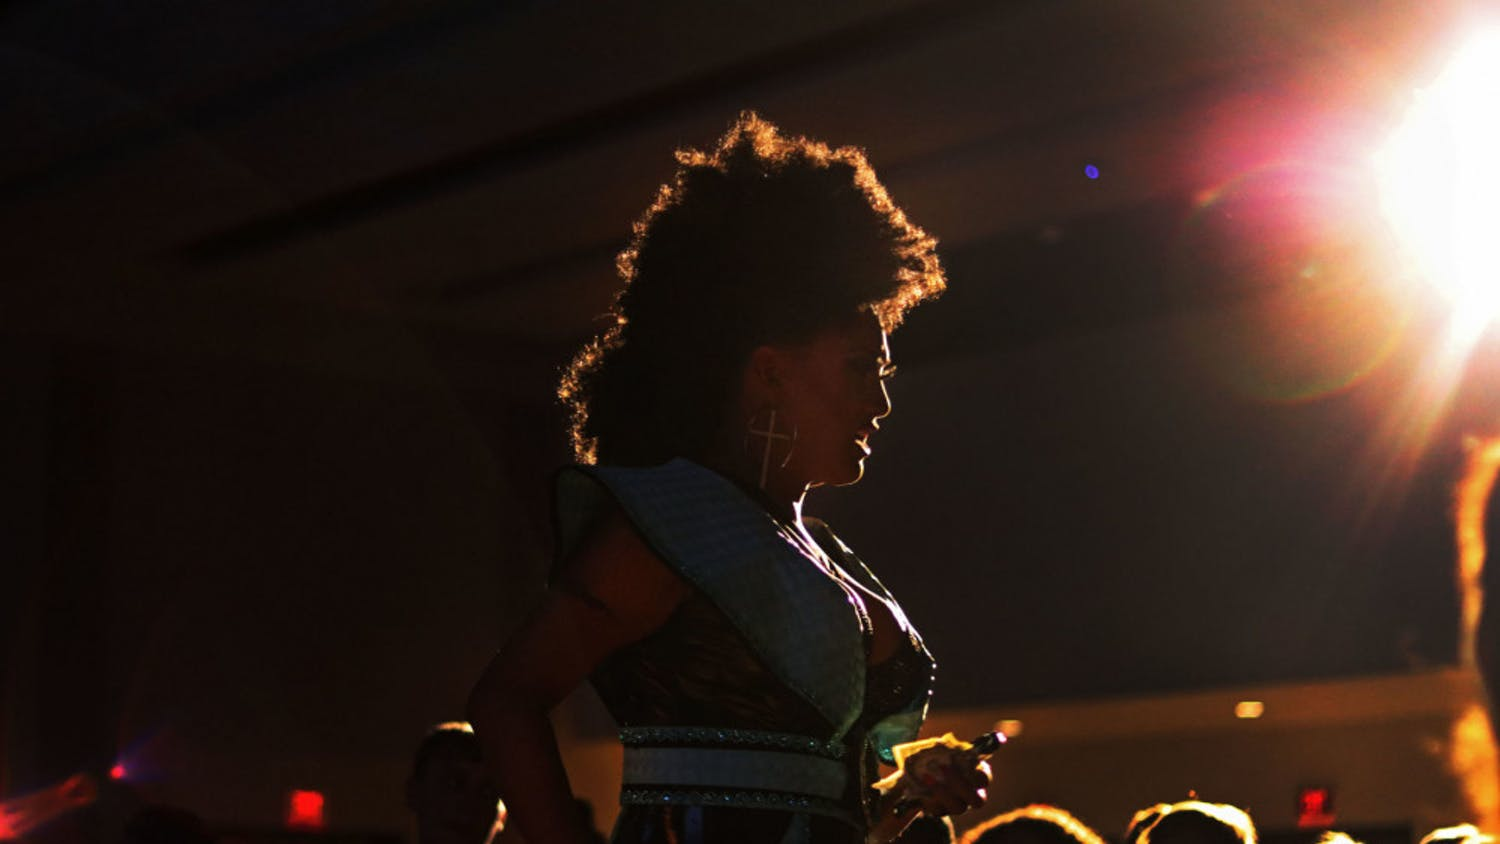 Faith Taylor walks into the crowd of over 250 people Monday night during the Illuminate show in the Rion Ballroom at the Reitz Union.